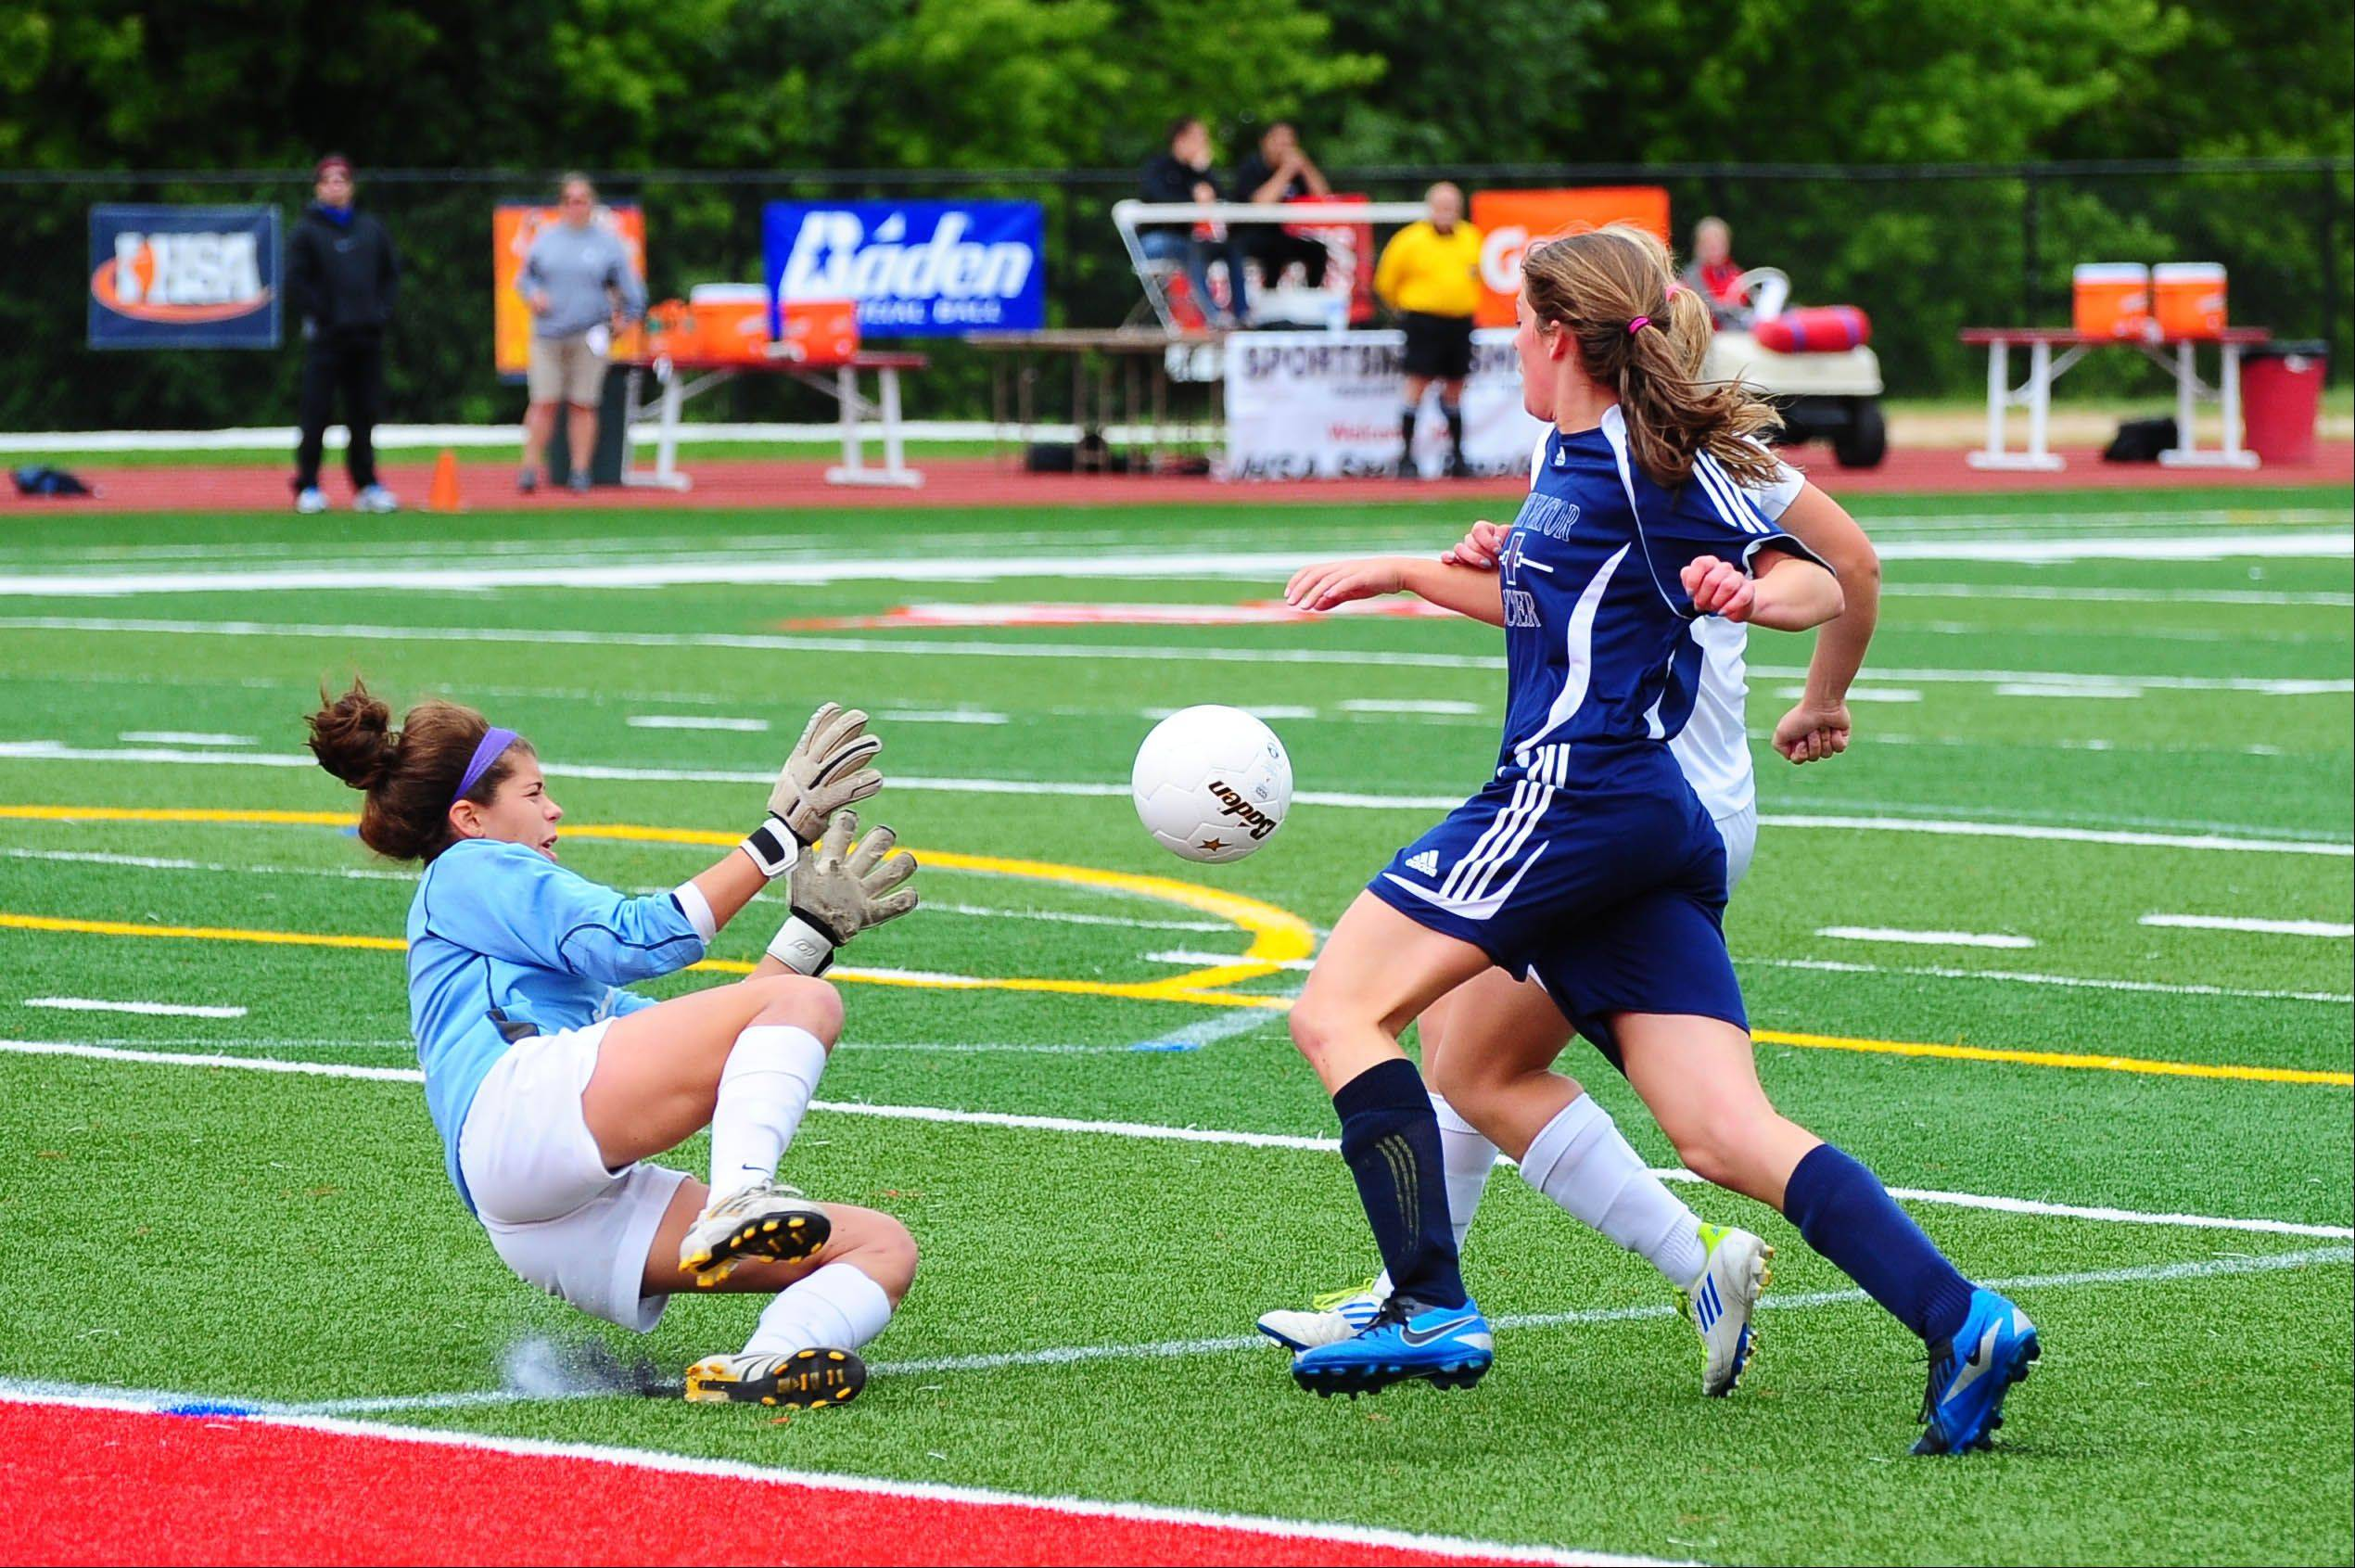 St. Viator goalie, Morgan Hess, dives for the ball during the girls soccer Class 2A semifinal on Friday.